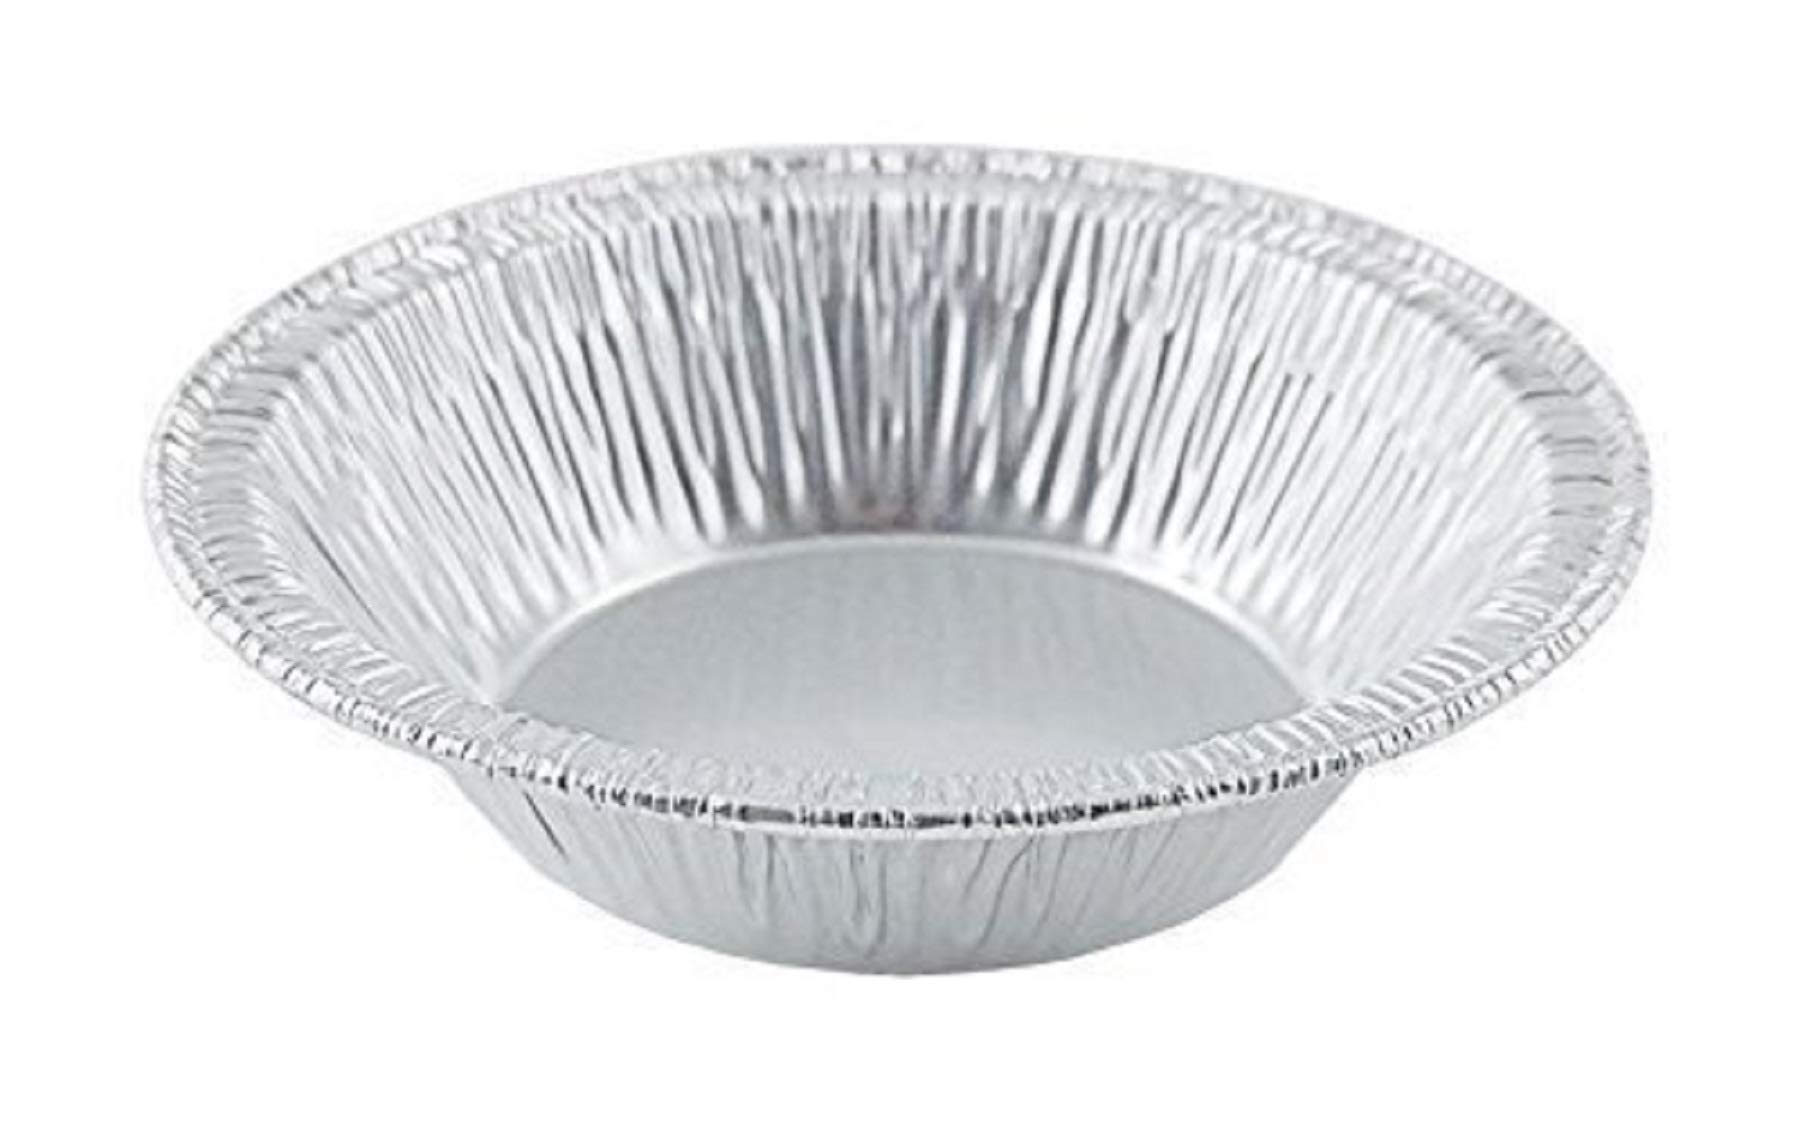 Small Mini Aluminum Foil Disposable Baking Tart Pans - 3 3/8 inches Pie Tins for Hot and Cold Foods Made in USA (Pack of 100) by The Baker Celebrations